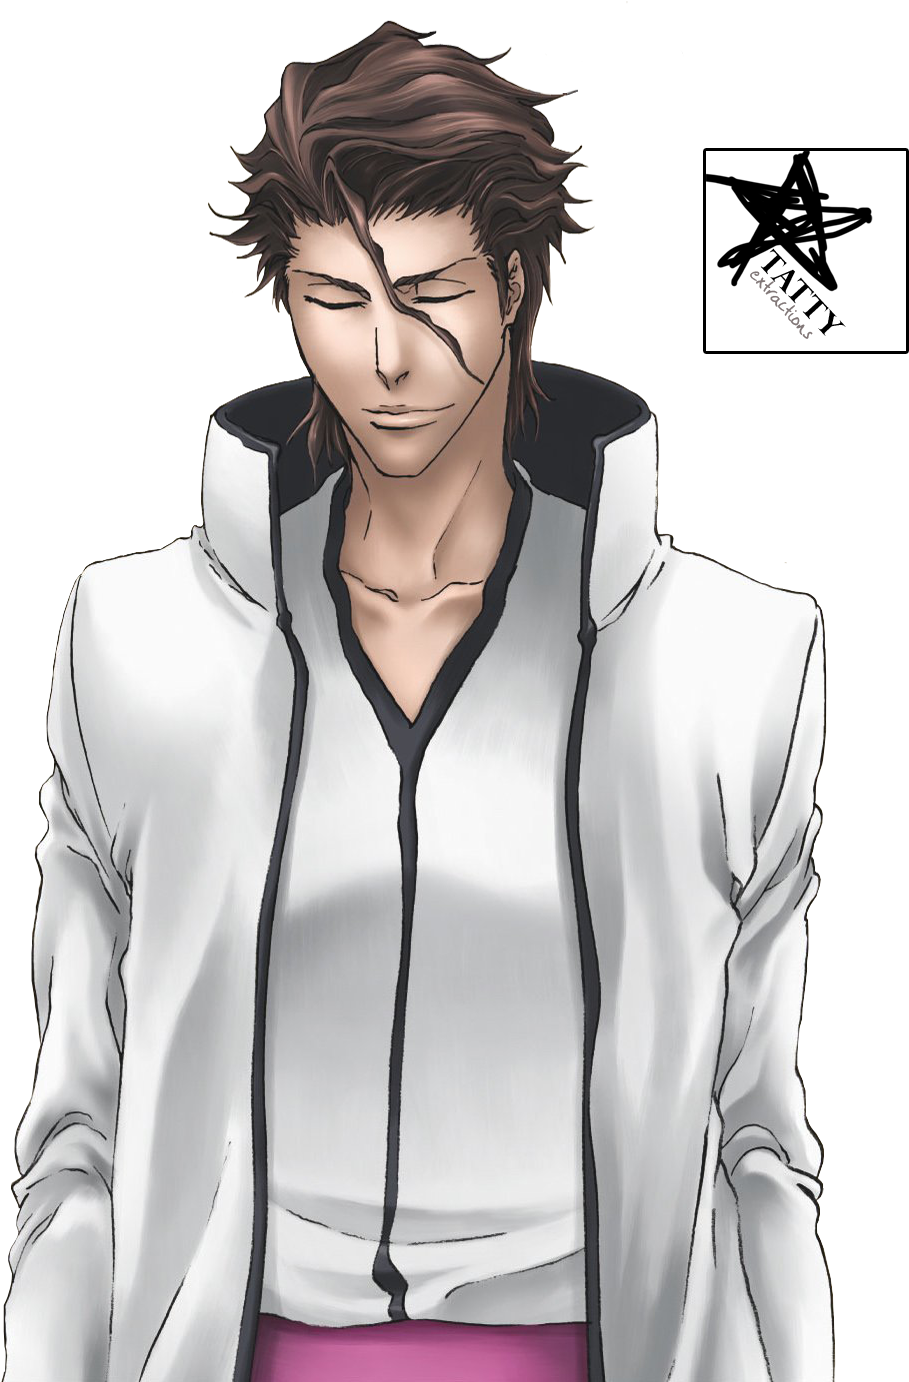 HD Aizen Images aizen Hd Wallpaper And Background   Aizen 909x1382